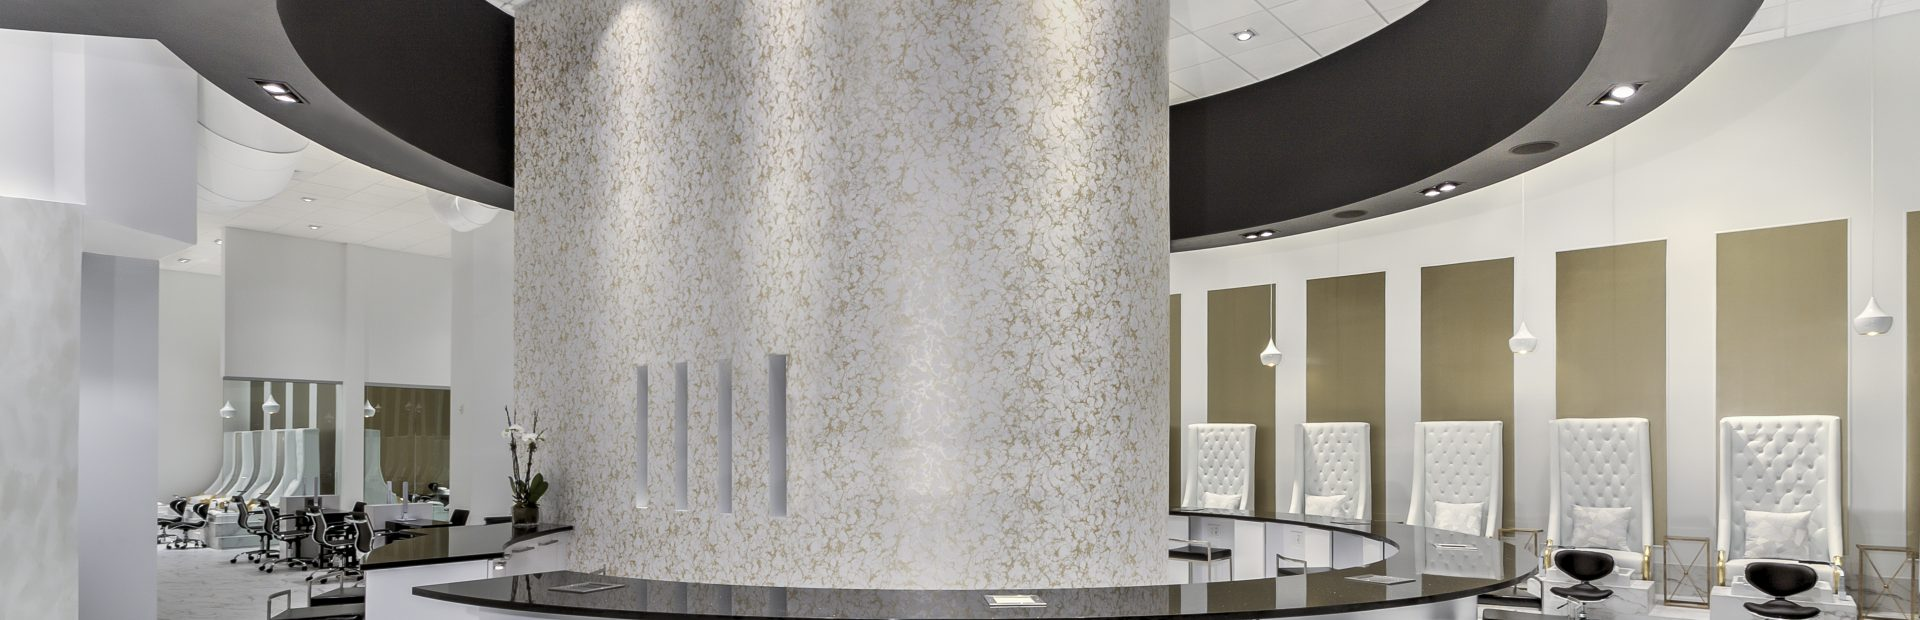 Luxury nail salon interior design - Cachet Nail Boutique Luxury Nail Salon Charlotte Nc Southpark South End